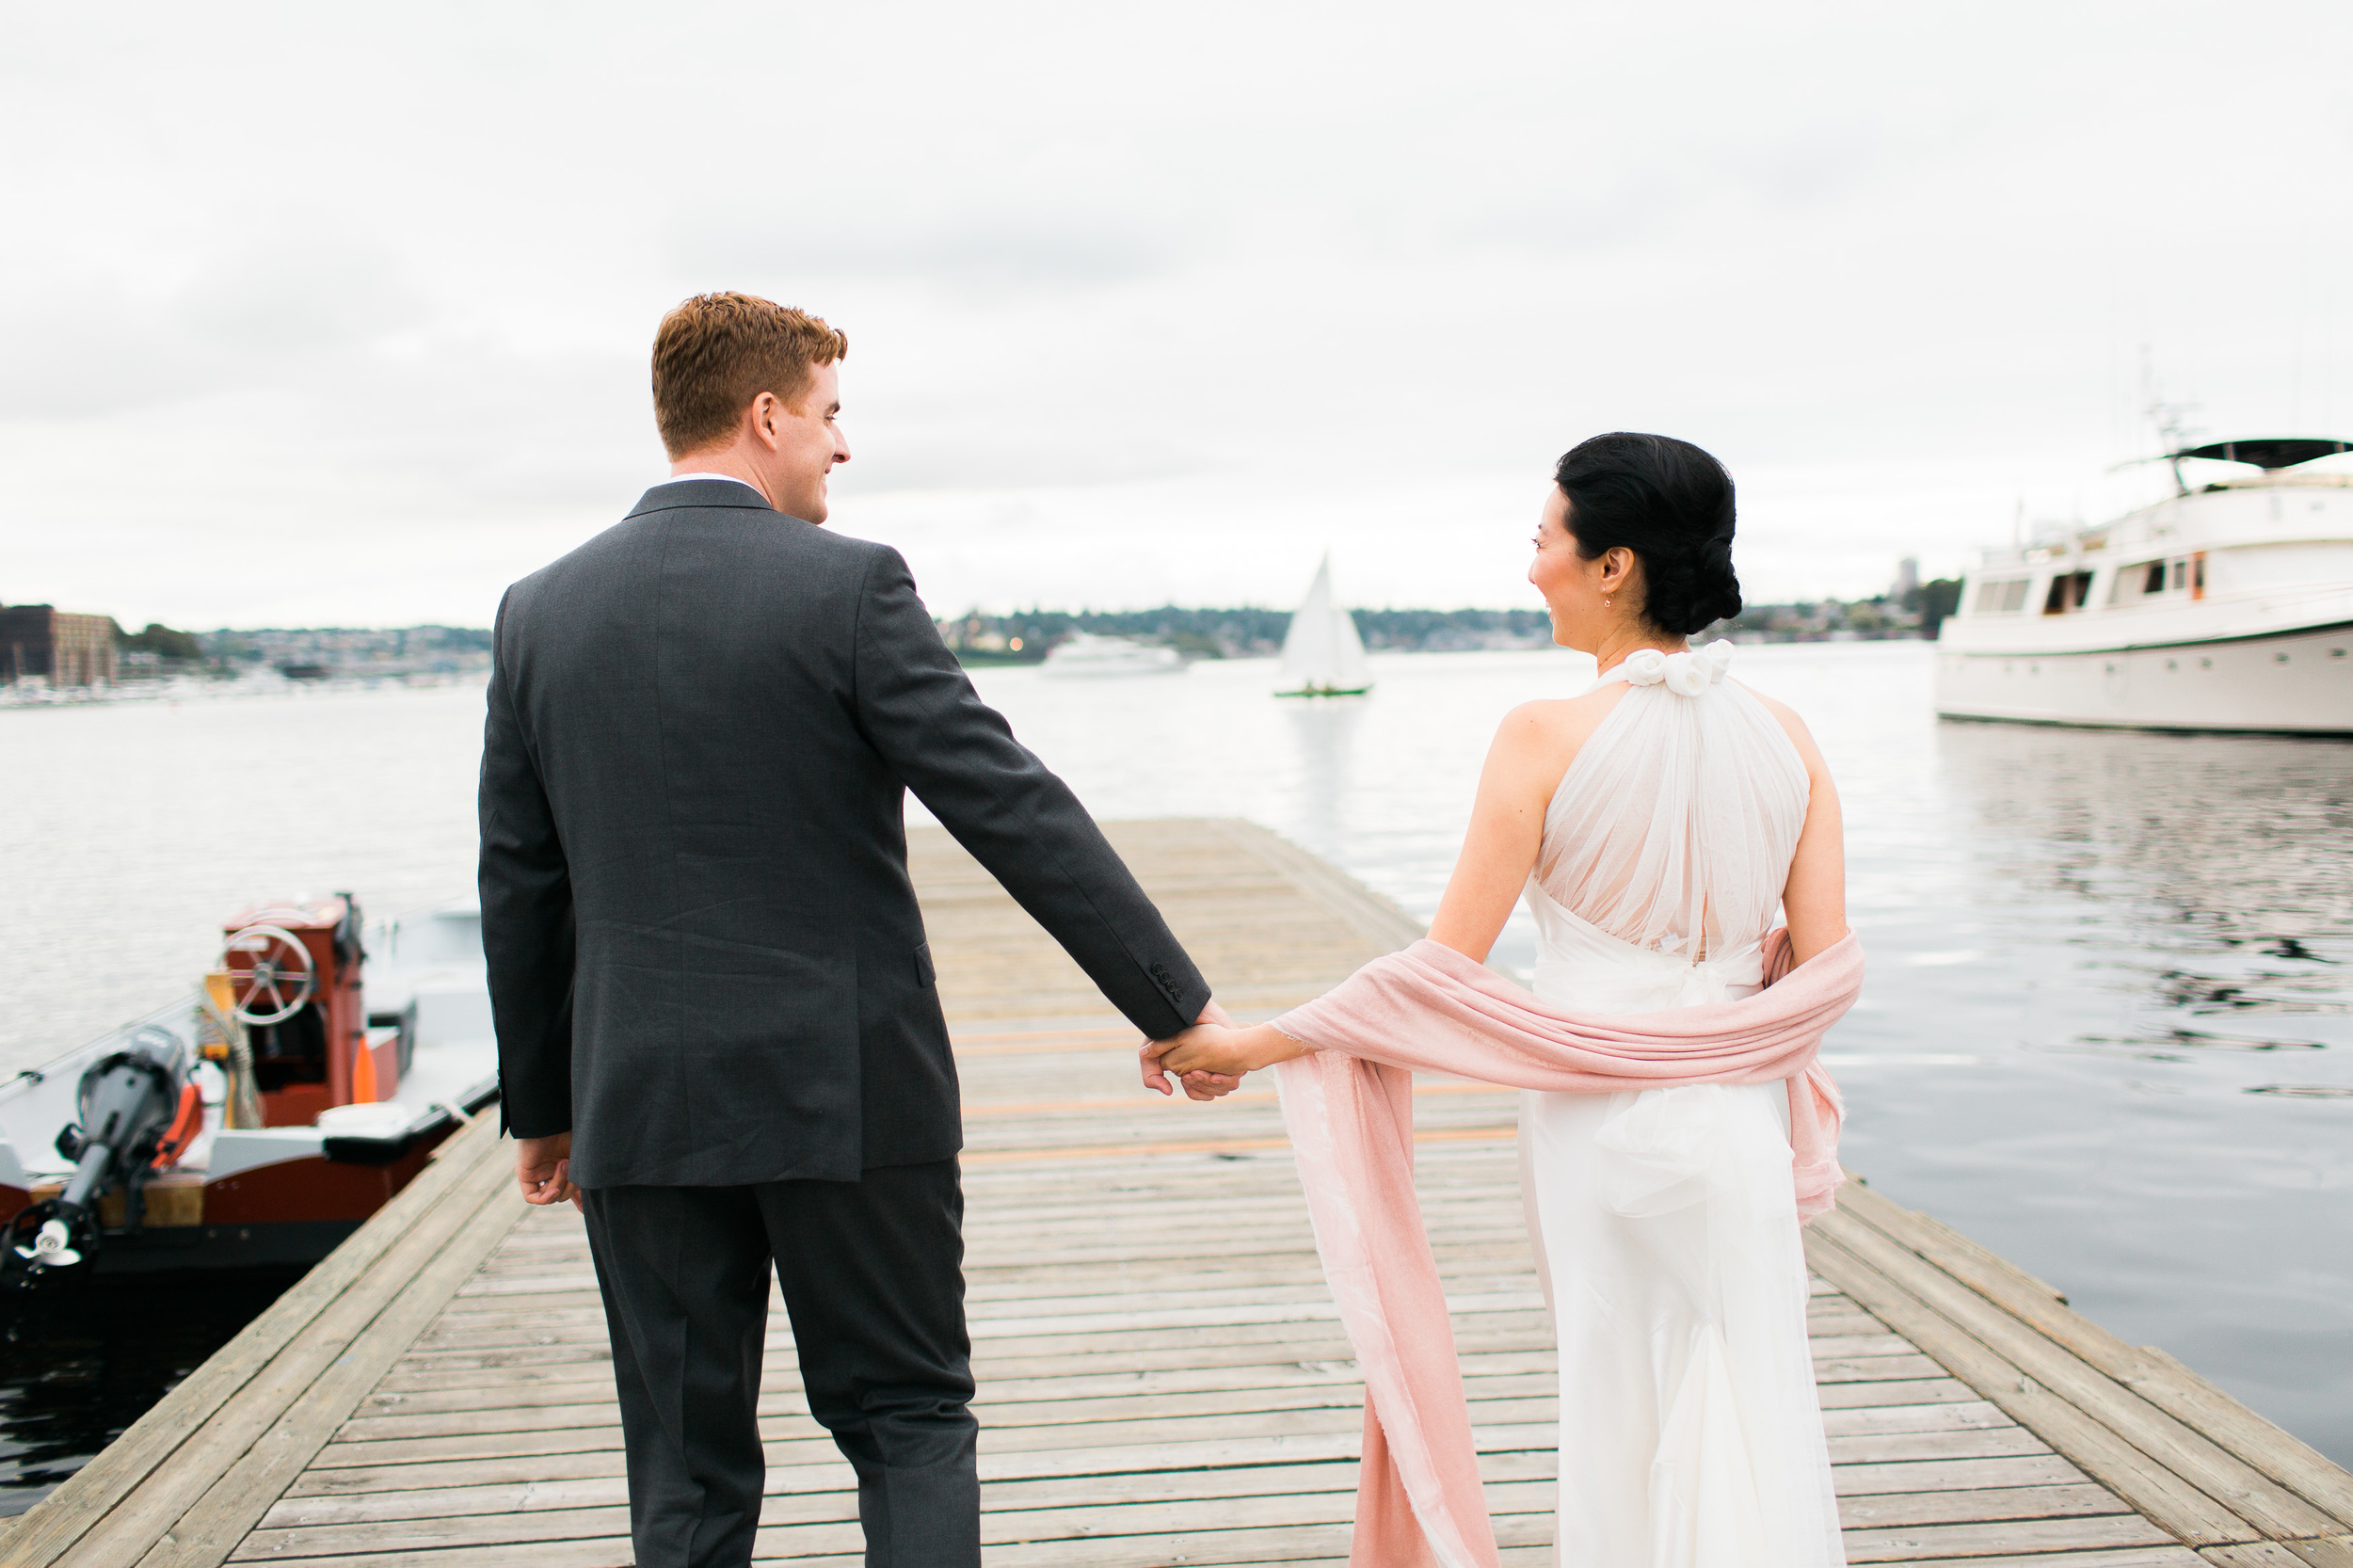 Bride and Groom on Dock   Center for Wooden Boats   Asgari Photography   Seattle Wedding Planner   Chinese Wedding Planner